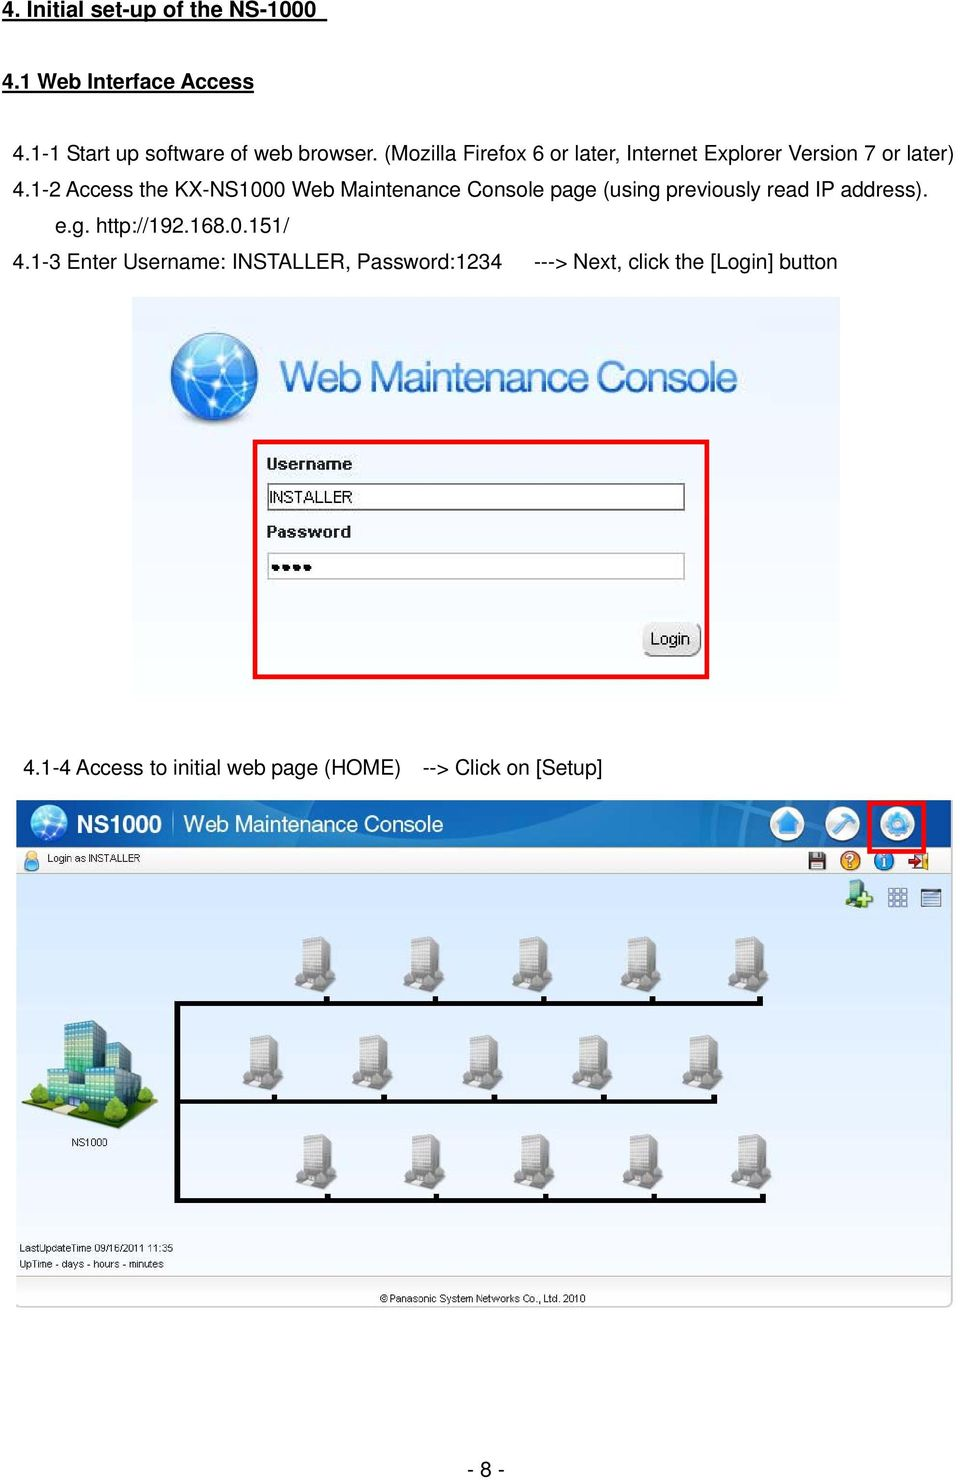 1-2 Access the KX-NS1000 Web Maintenance Console page (using previously read IP address). e.g. http://192.